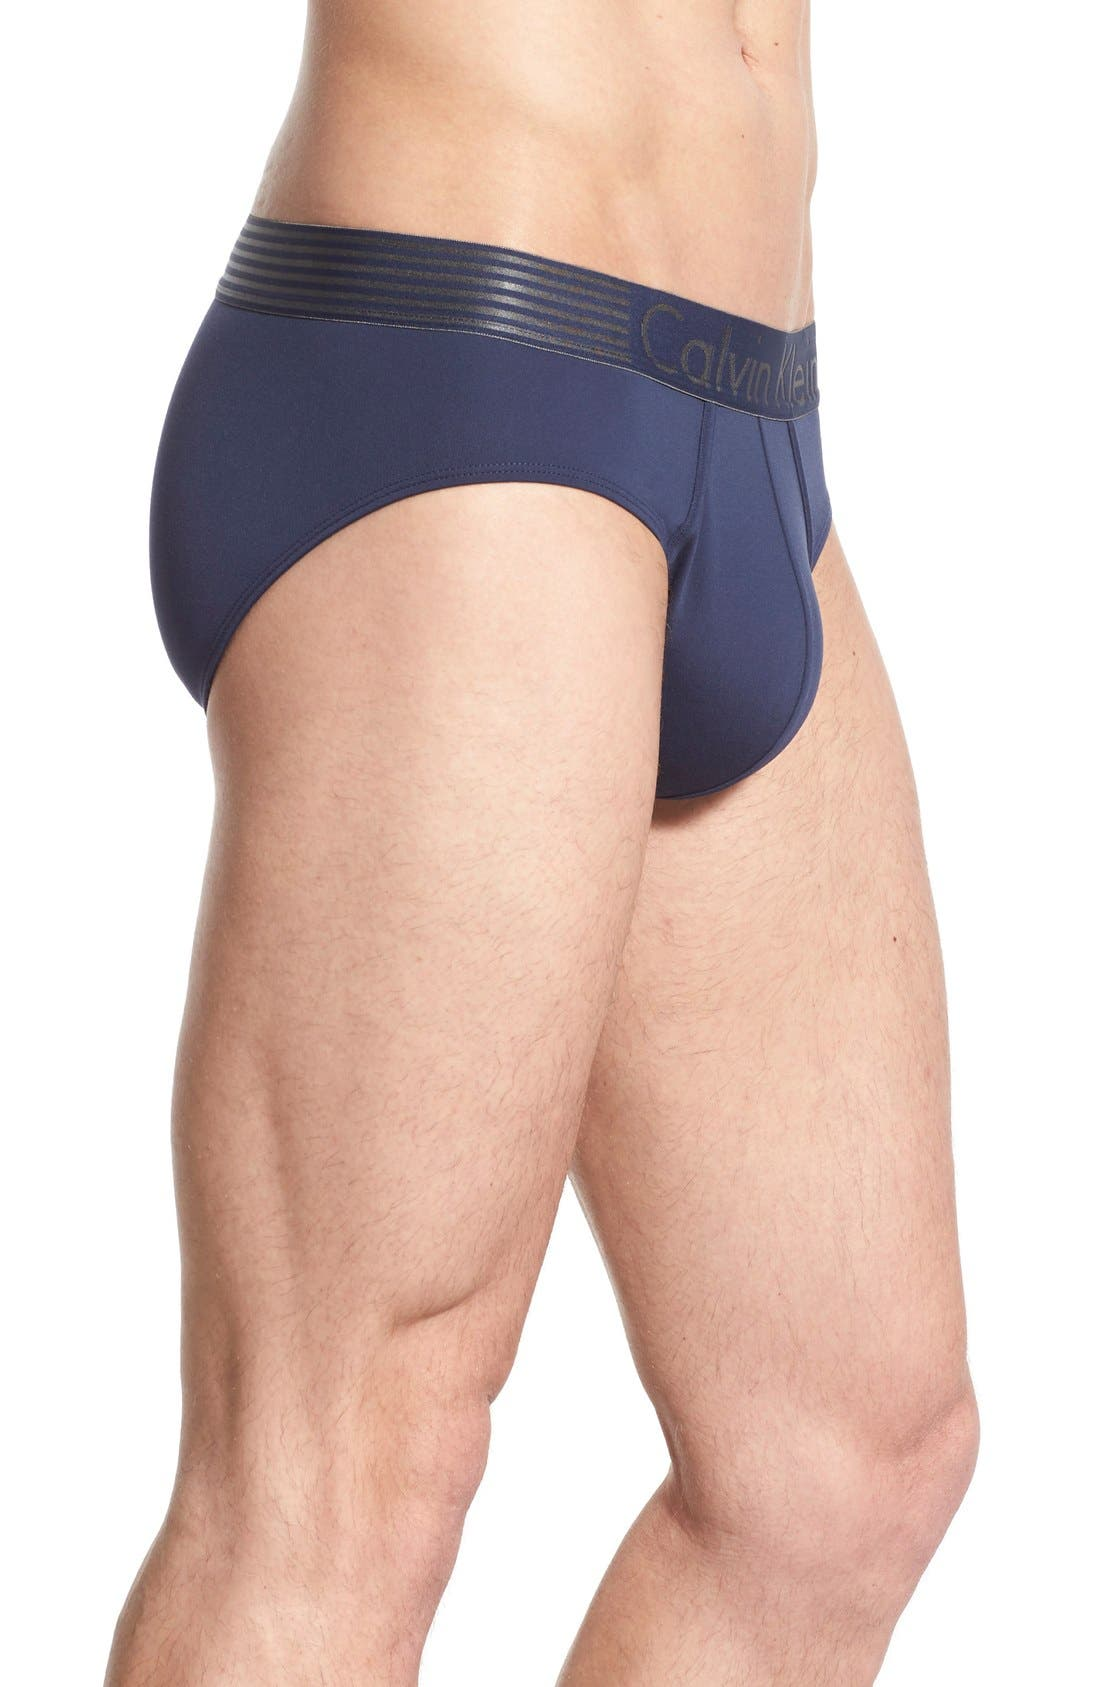 Iron Strength Briefs,                             Alternate thumbnail 8, color,